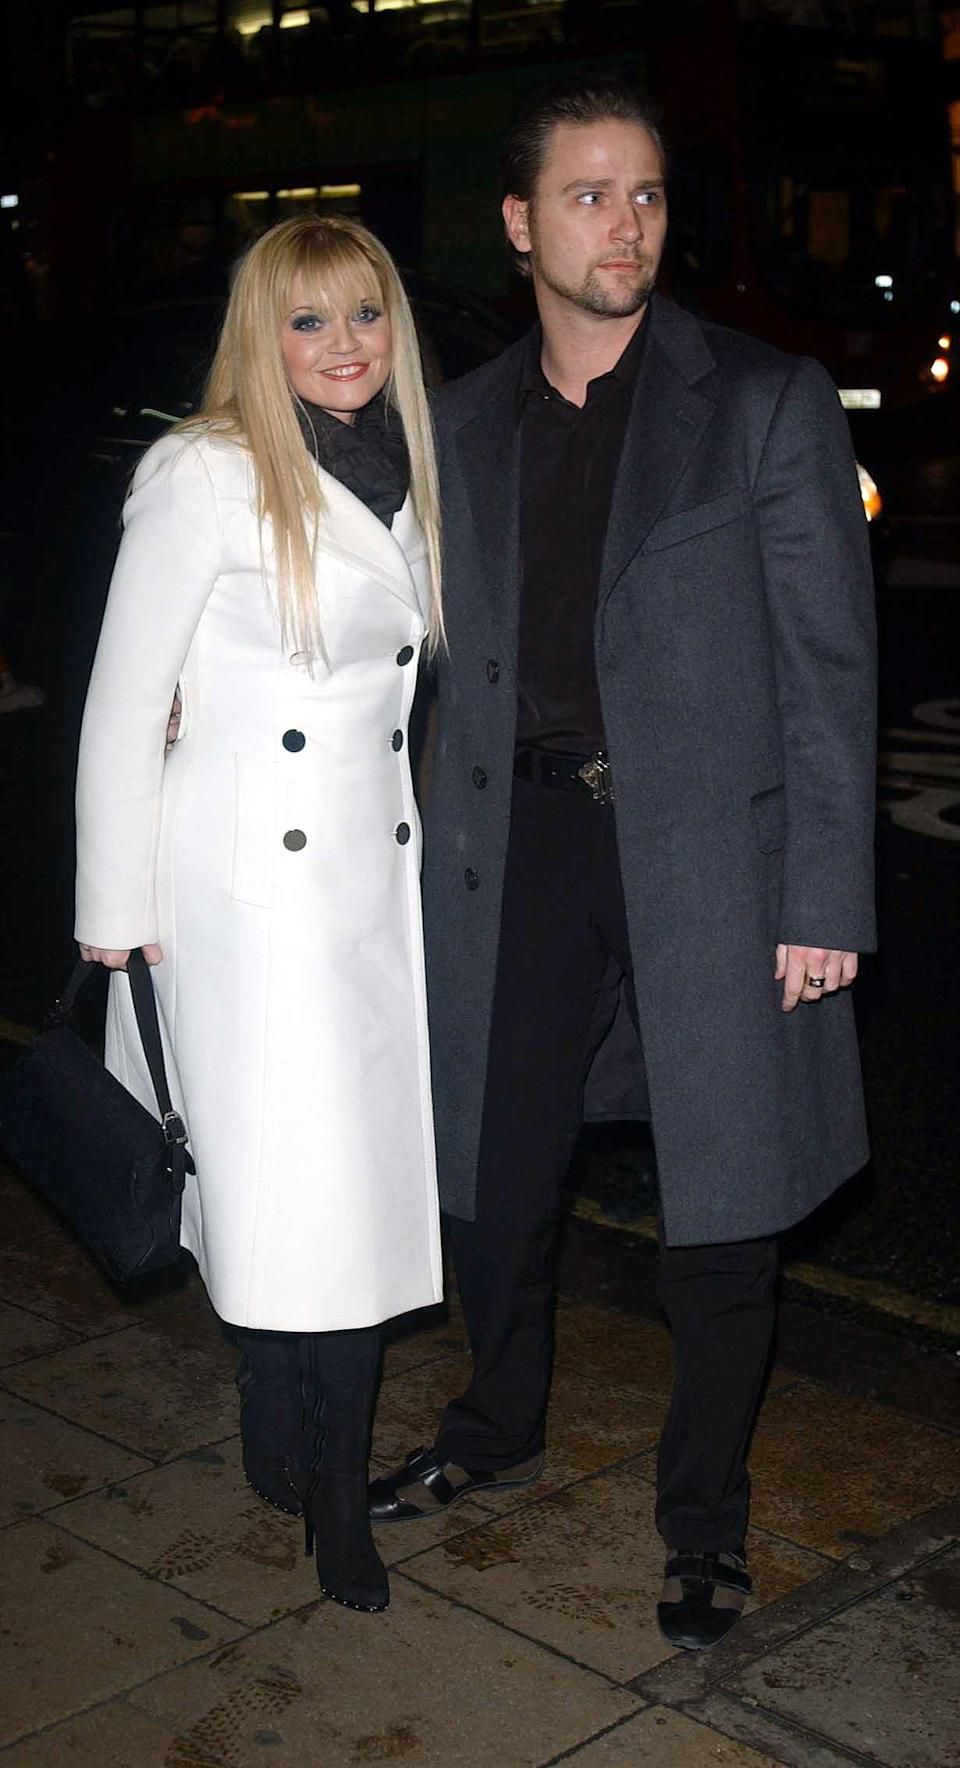 Danniella Westbrook and husband Kevin Jenkins arrives for the UK celebrity film premiere of Scary Movie 3, held at the UGC cinema Haymarket, central London.   (Photo by Andy Butterton - PA Images/PA Images via Getty Images)